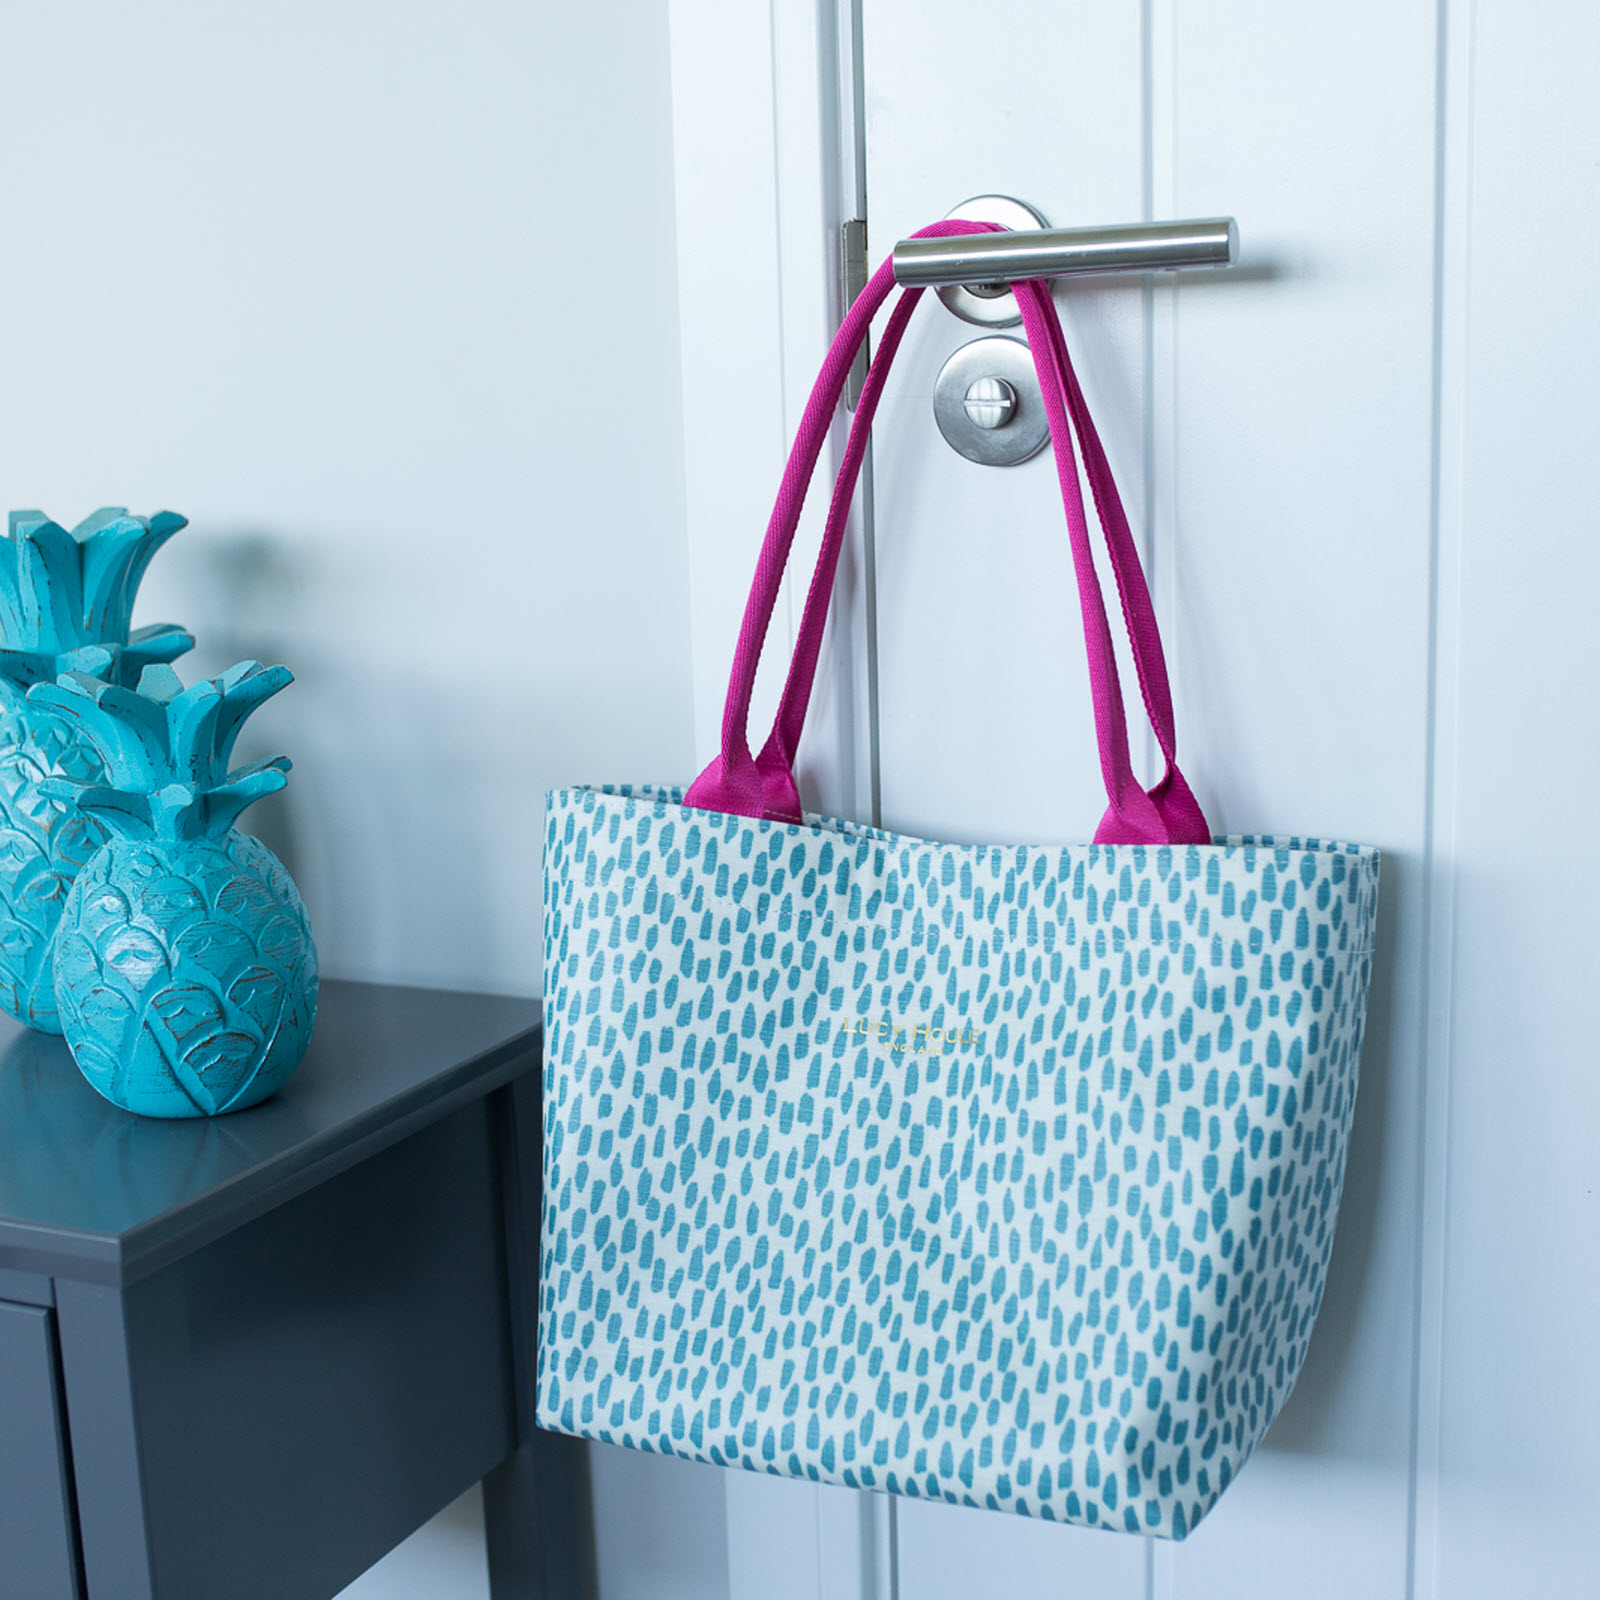 Aqua Cobblestone Small Tote Bag with Hot Pink Handles 'Limited Edition'